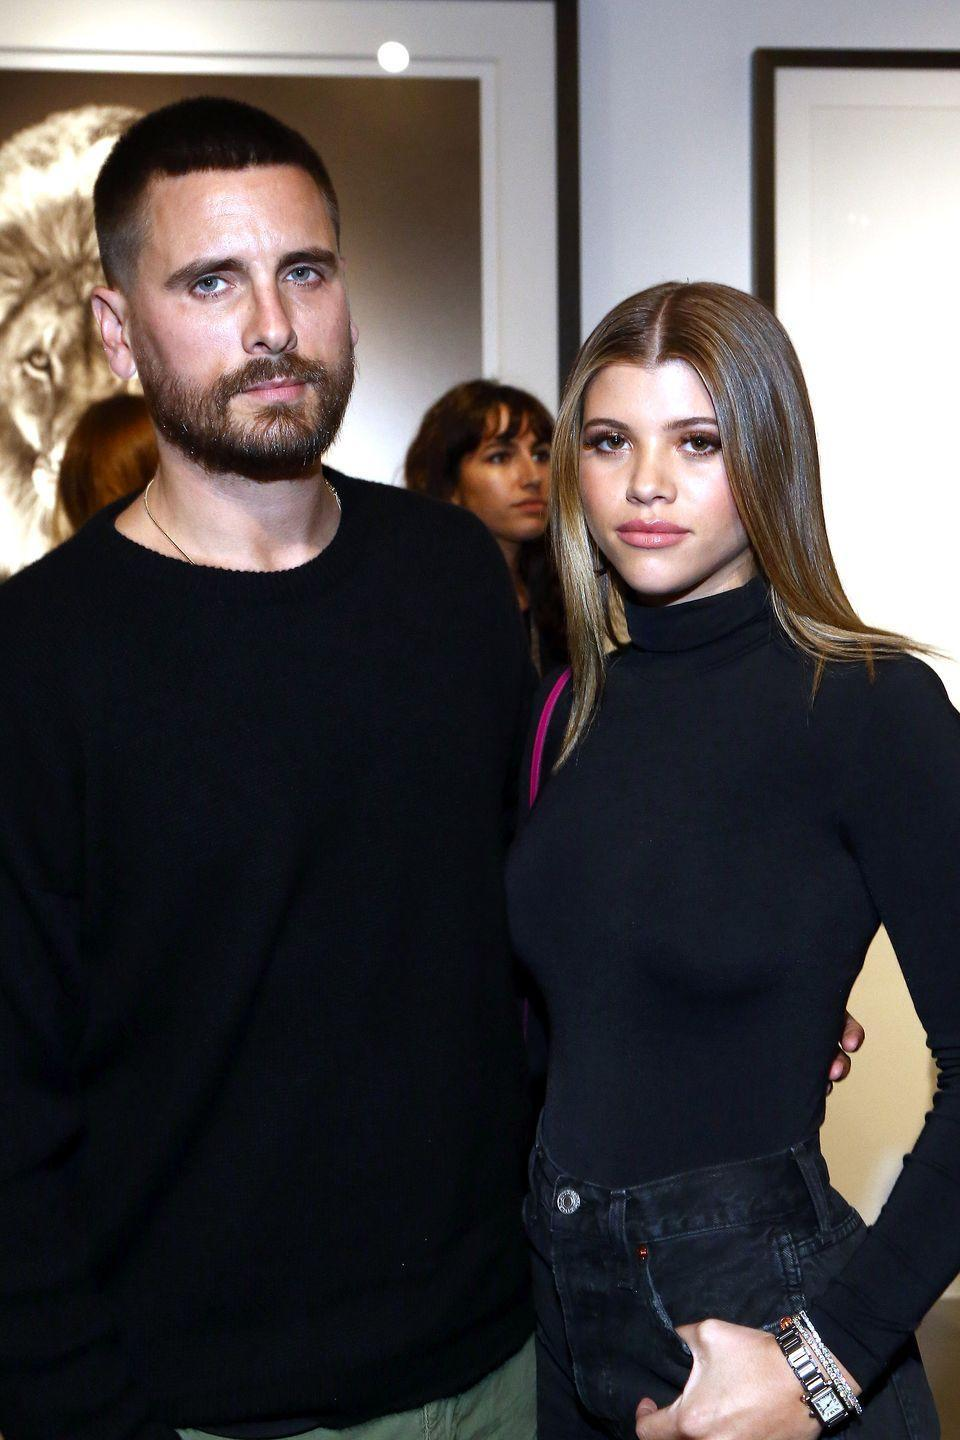 "<p>After calling it quits with longtime girlfriend Kourtney Kardashian in July 2015, Scott Disick began dating Sofia Richie almost two years later. However, some people weren't used to seeing Scott with another woman and, let's just say, <a href=""https://twitter.com/HollywoodLife/status/1141850805491965952"" rel=""nofollow noopener"" target=""_blank"" data-ylk=""slk:they weren't too happy about it"" class=""link rapid-noclick-resp"">they weren't too happy about it</a>. Throughout the last three years, and the ups and downs of Scott and Sofia's relationship, fans have held out hope that the co-parents will eventually make it work. </p>"